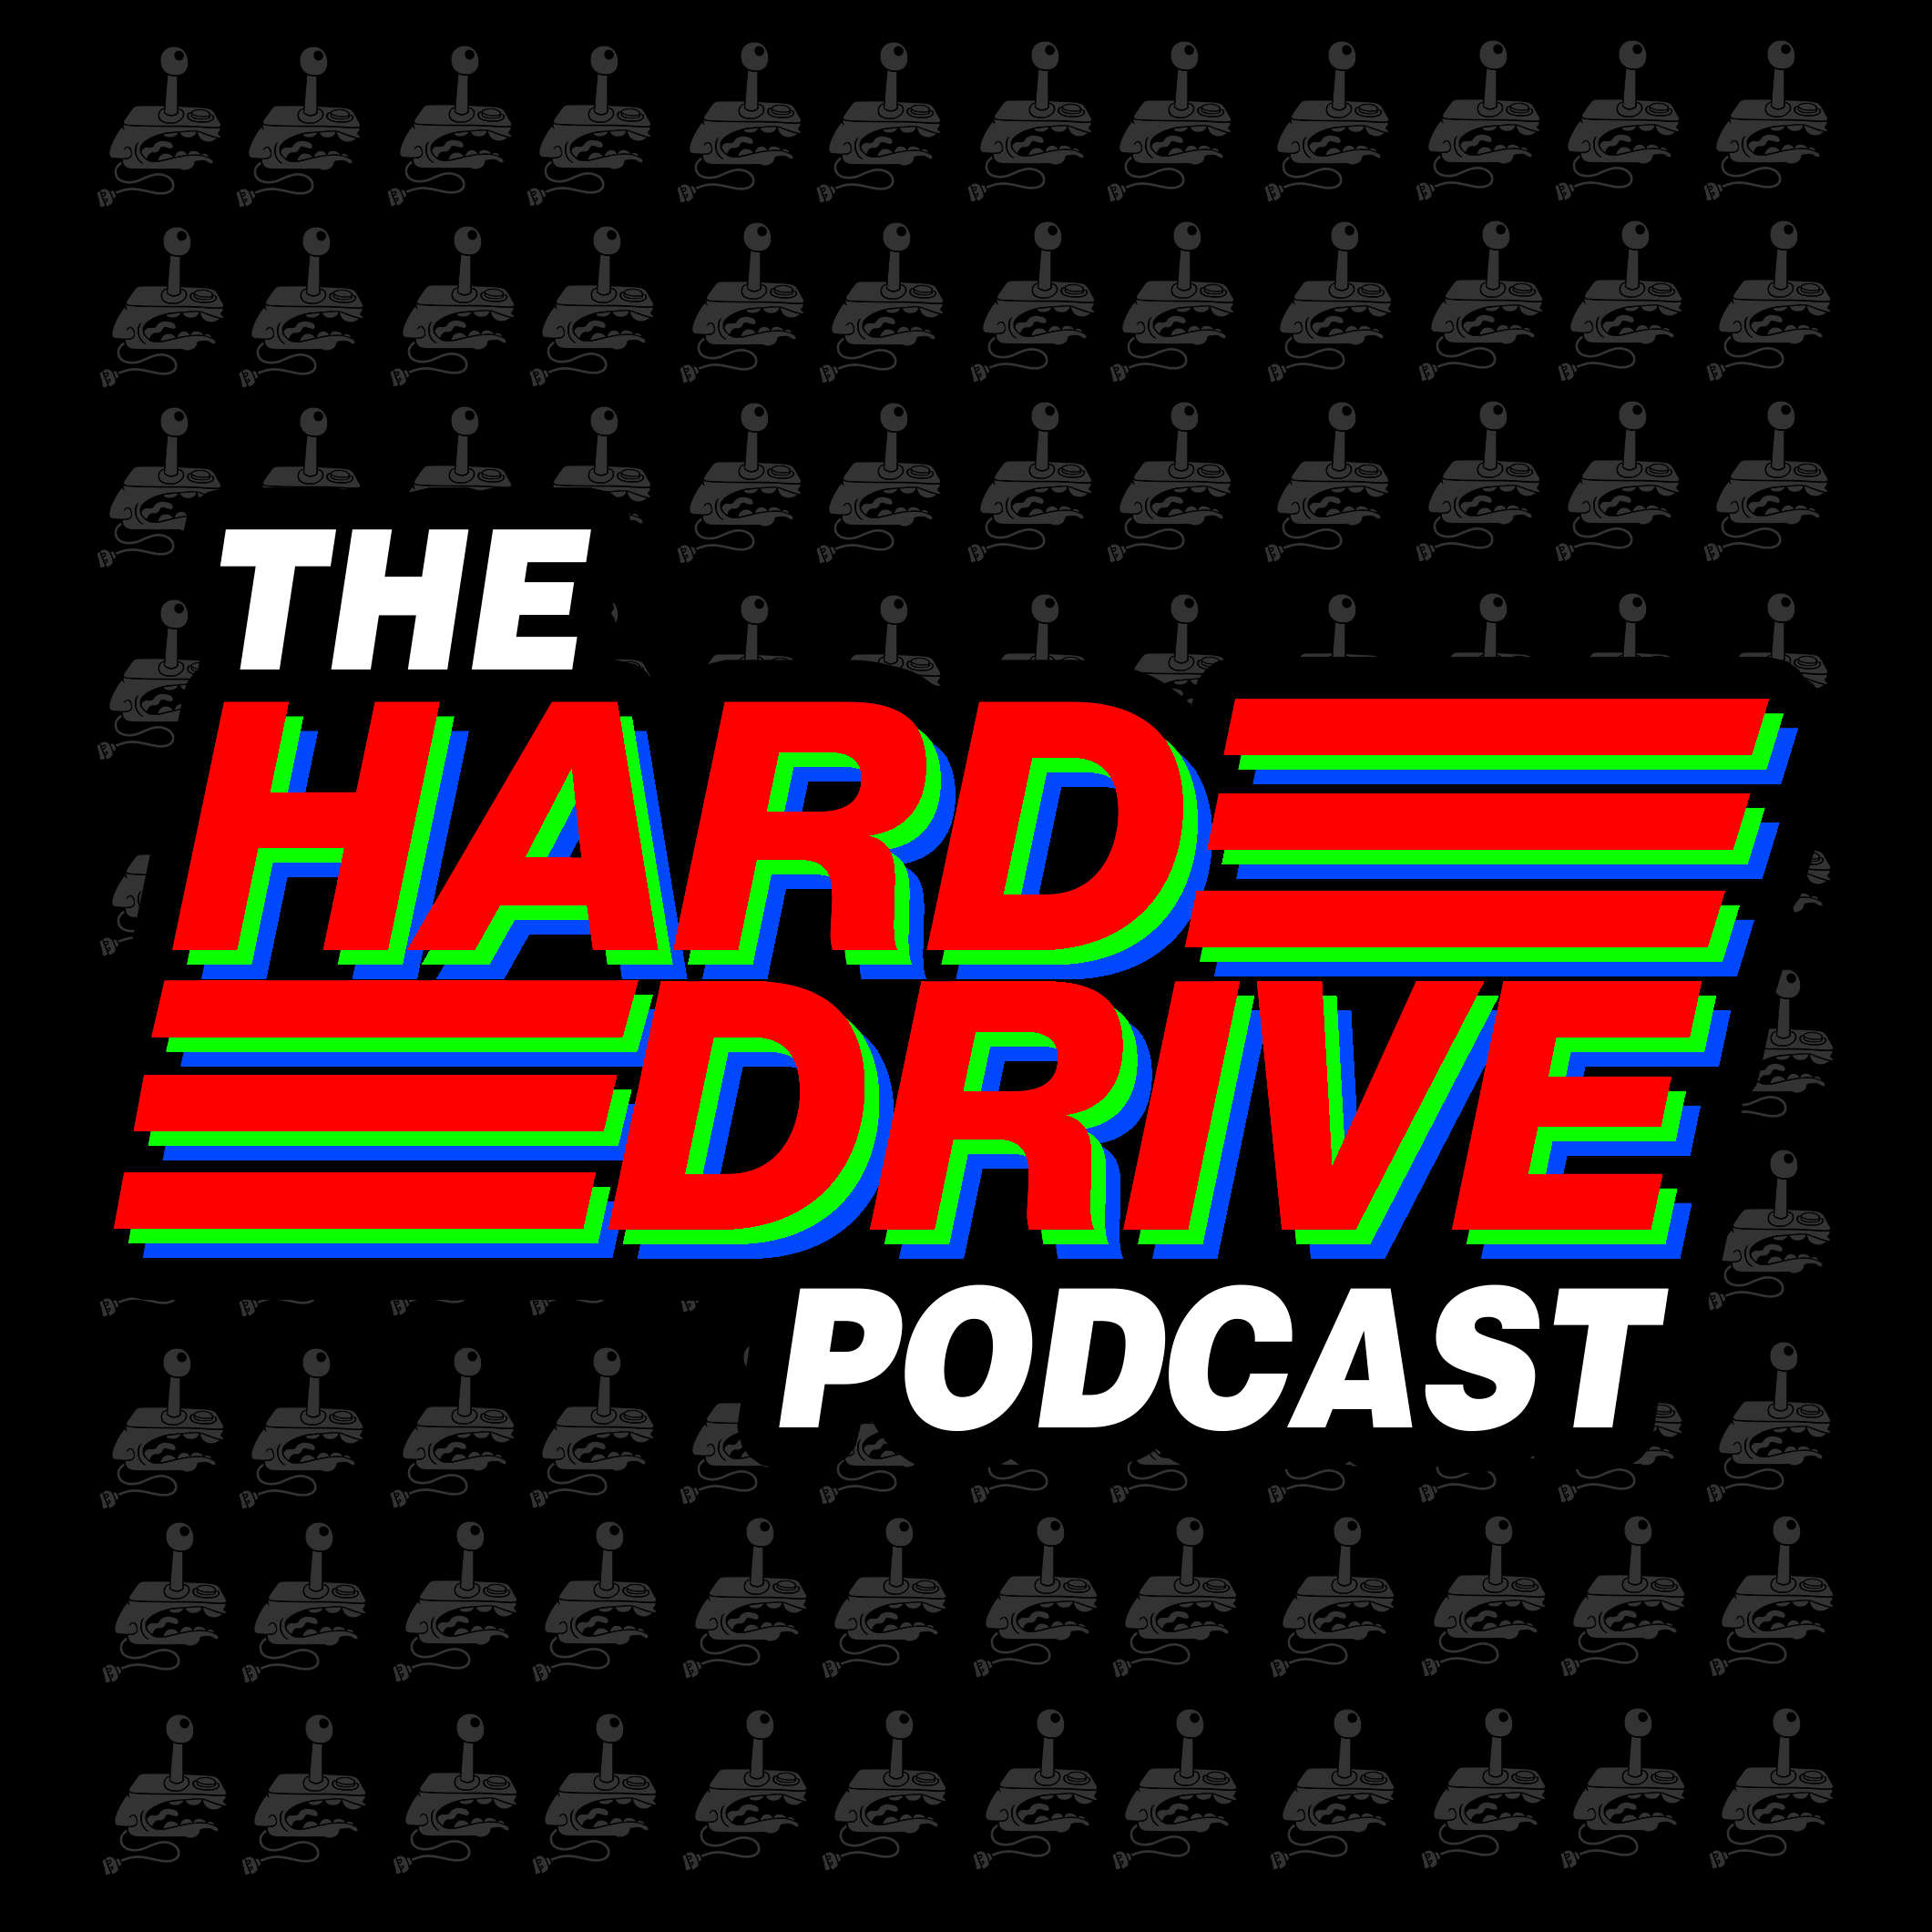 The Hard Drive Podcast show art